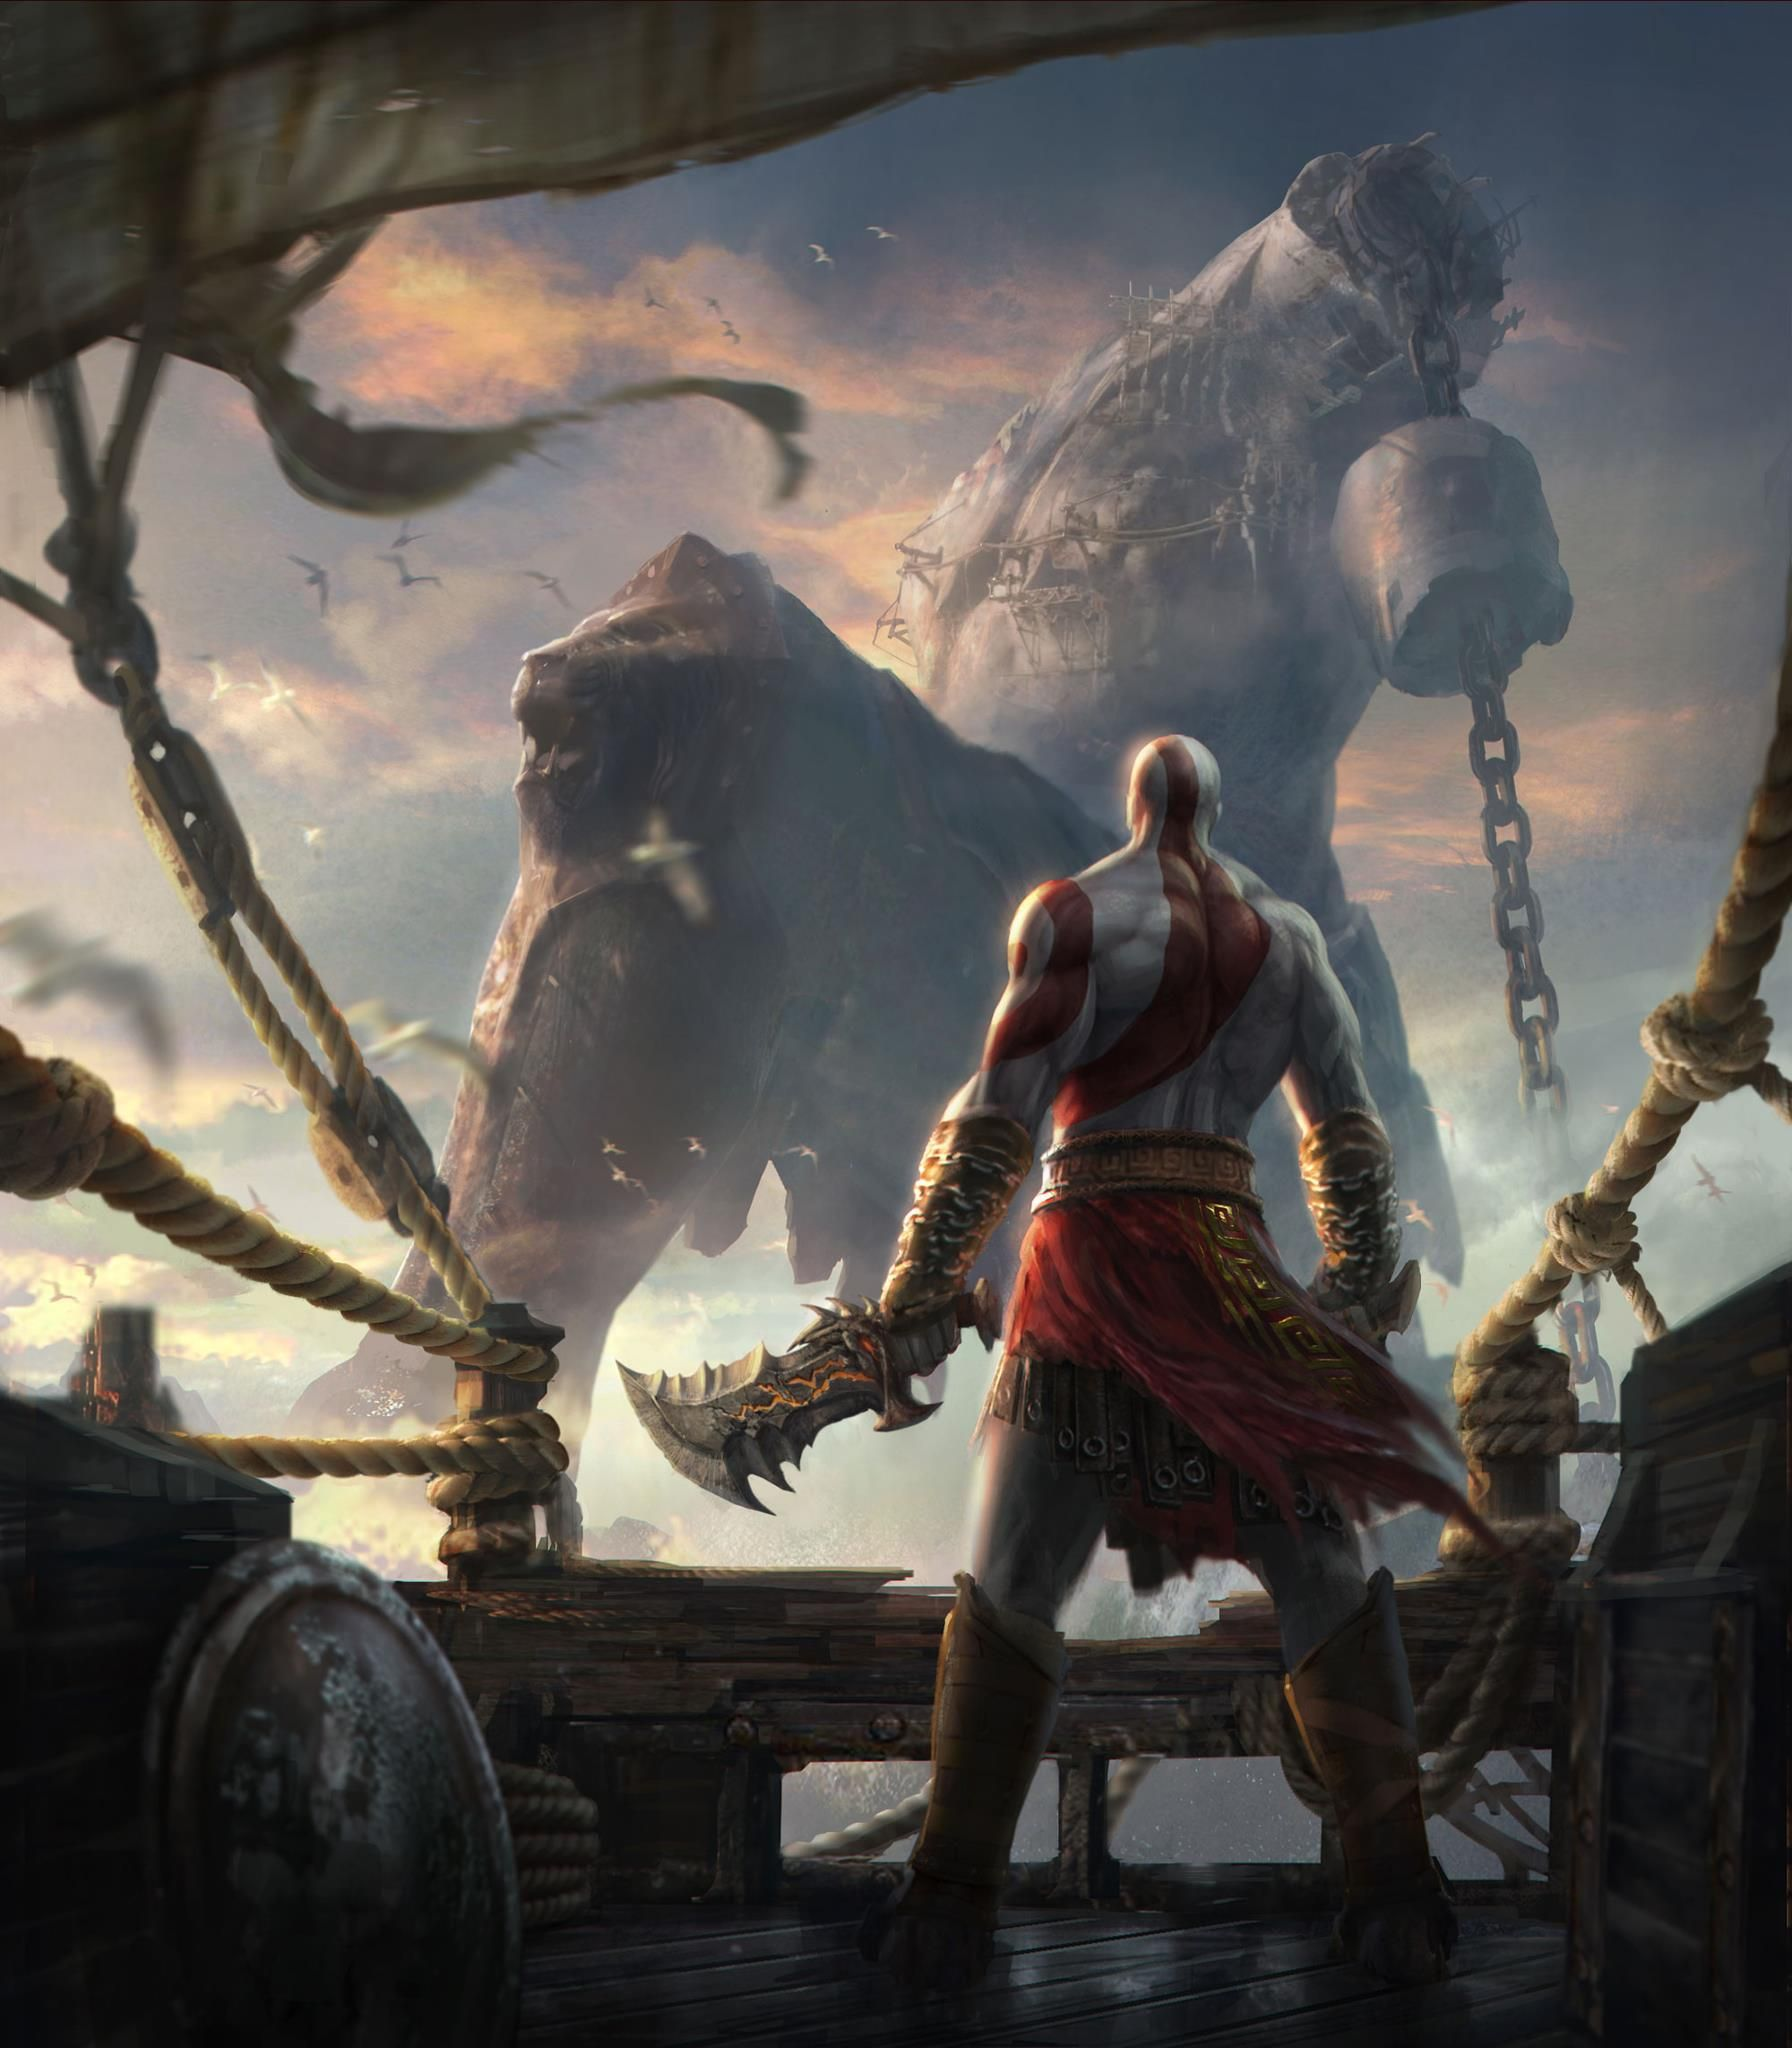 God of war ascension ares god trailer p truehd quality god of war concept art artwork chains blades kratos god of war ascension wallpaper voltagebd Image collections